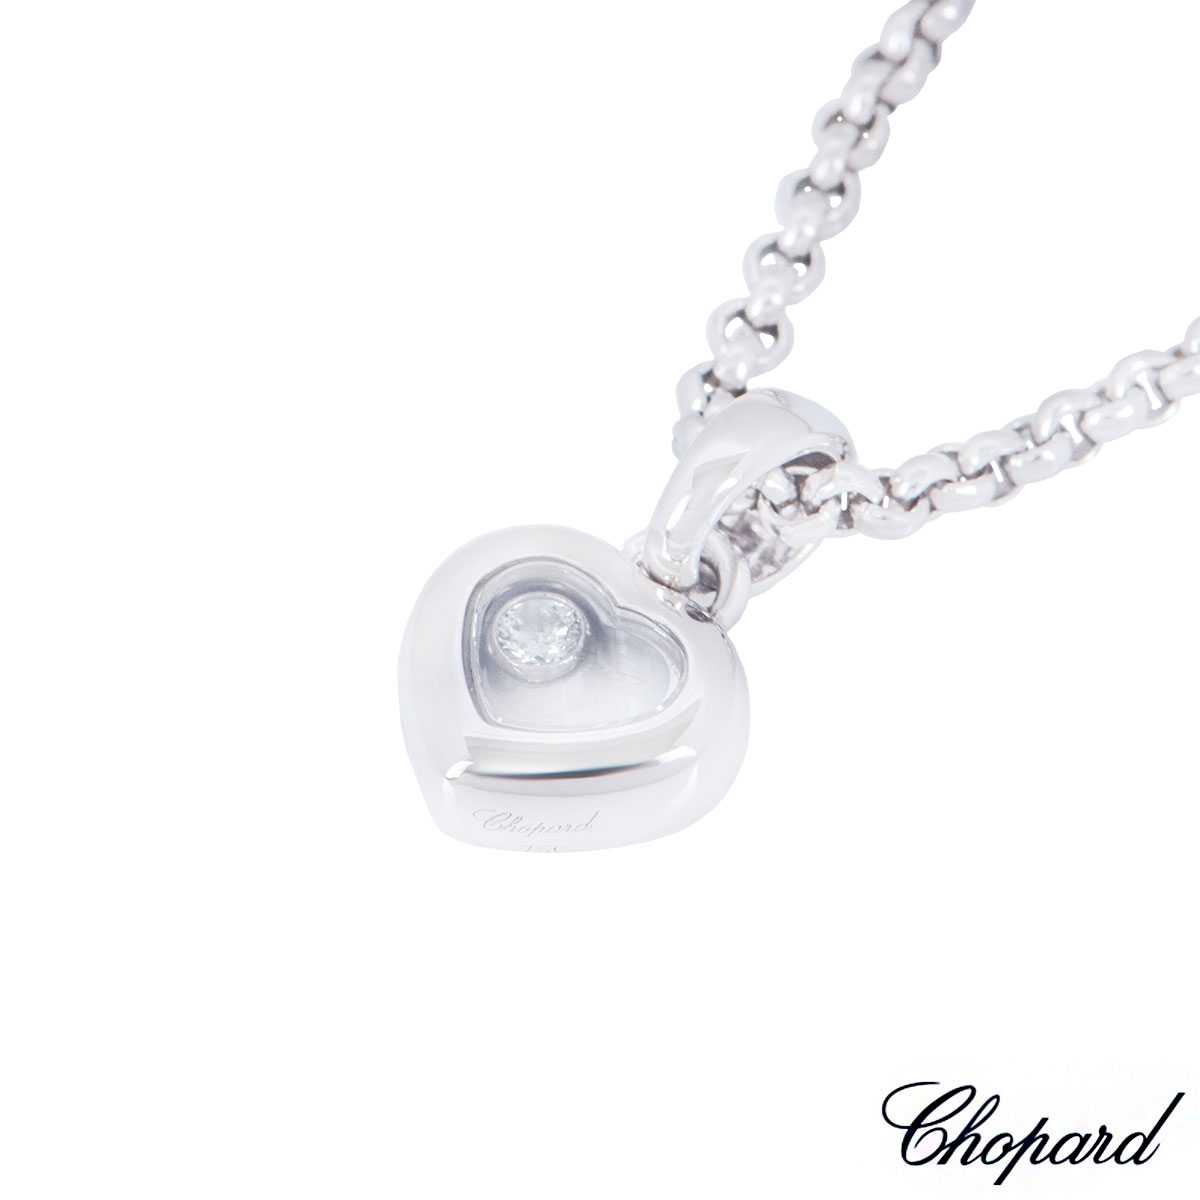 Chopard White Gold Happy Diamonds Necklace 79/4854